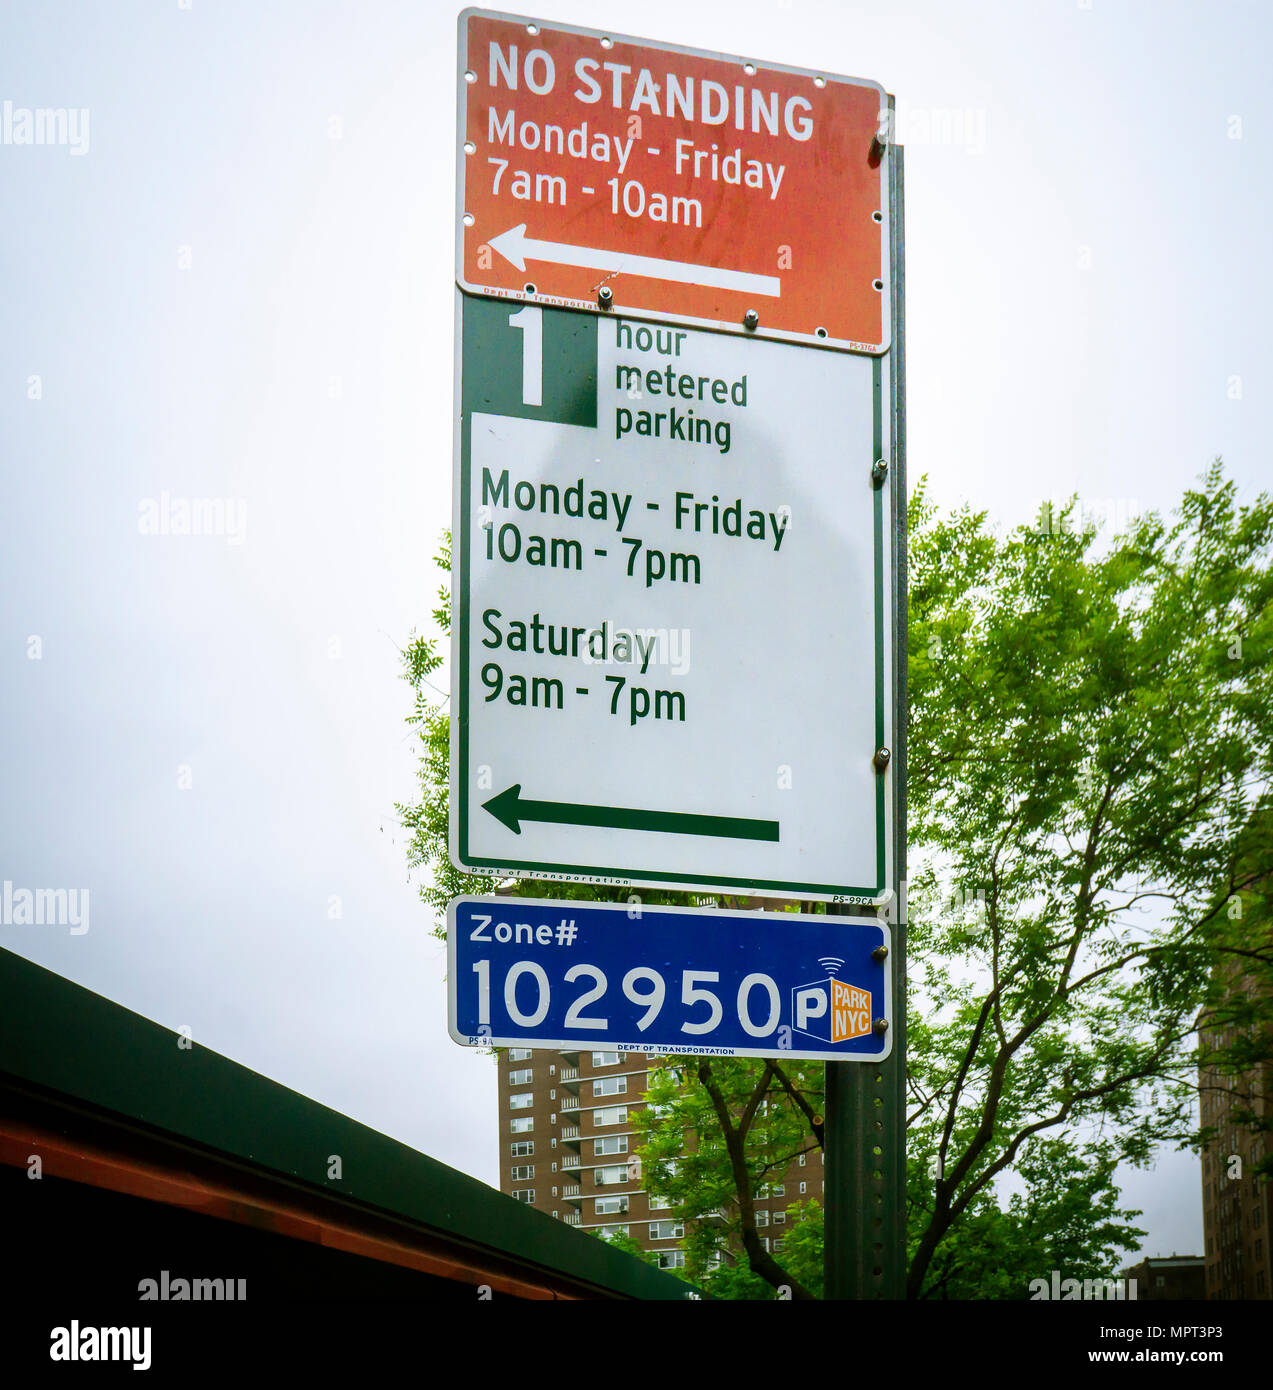 Street signs in the Chelsea neighborhood of New York  inform motorists of the time limitations at the metered parking spots on Thursday, May 17, 2018. The New York Dept. of Transportation announced today that metered parking rates will rise by the end of the year. (© Richard B. Levine) - Stock Image